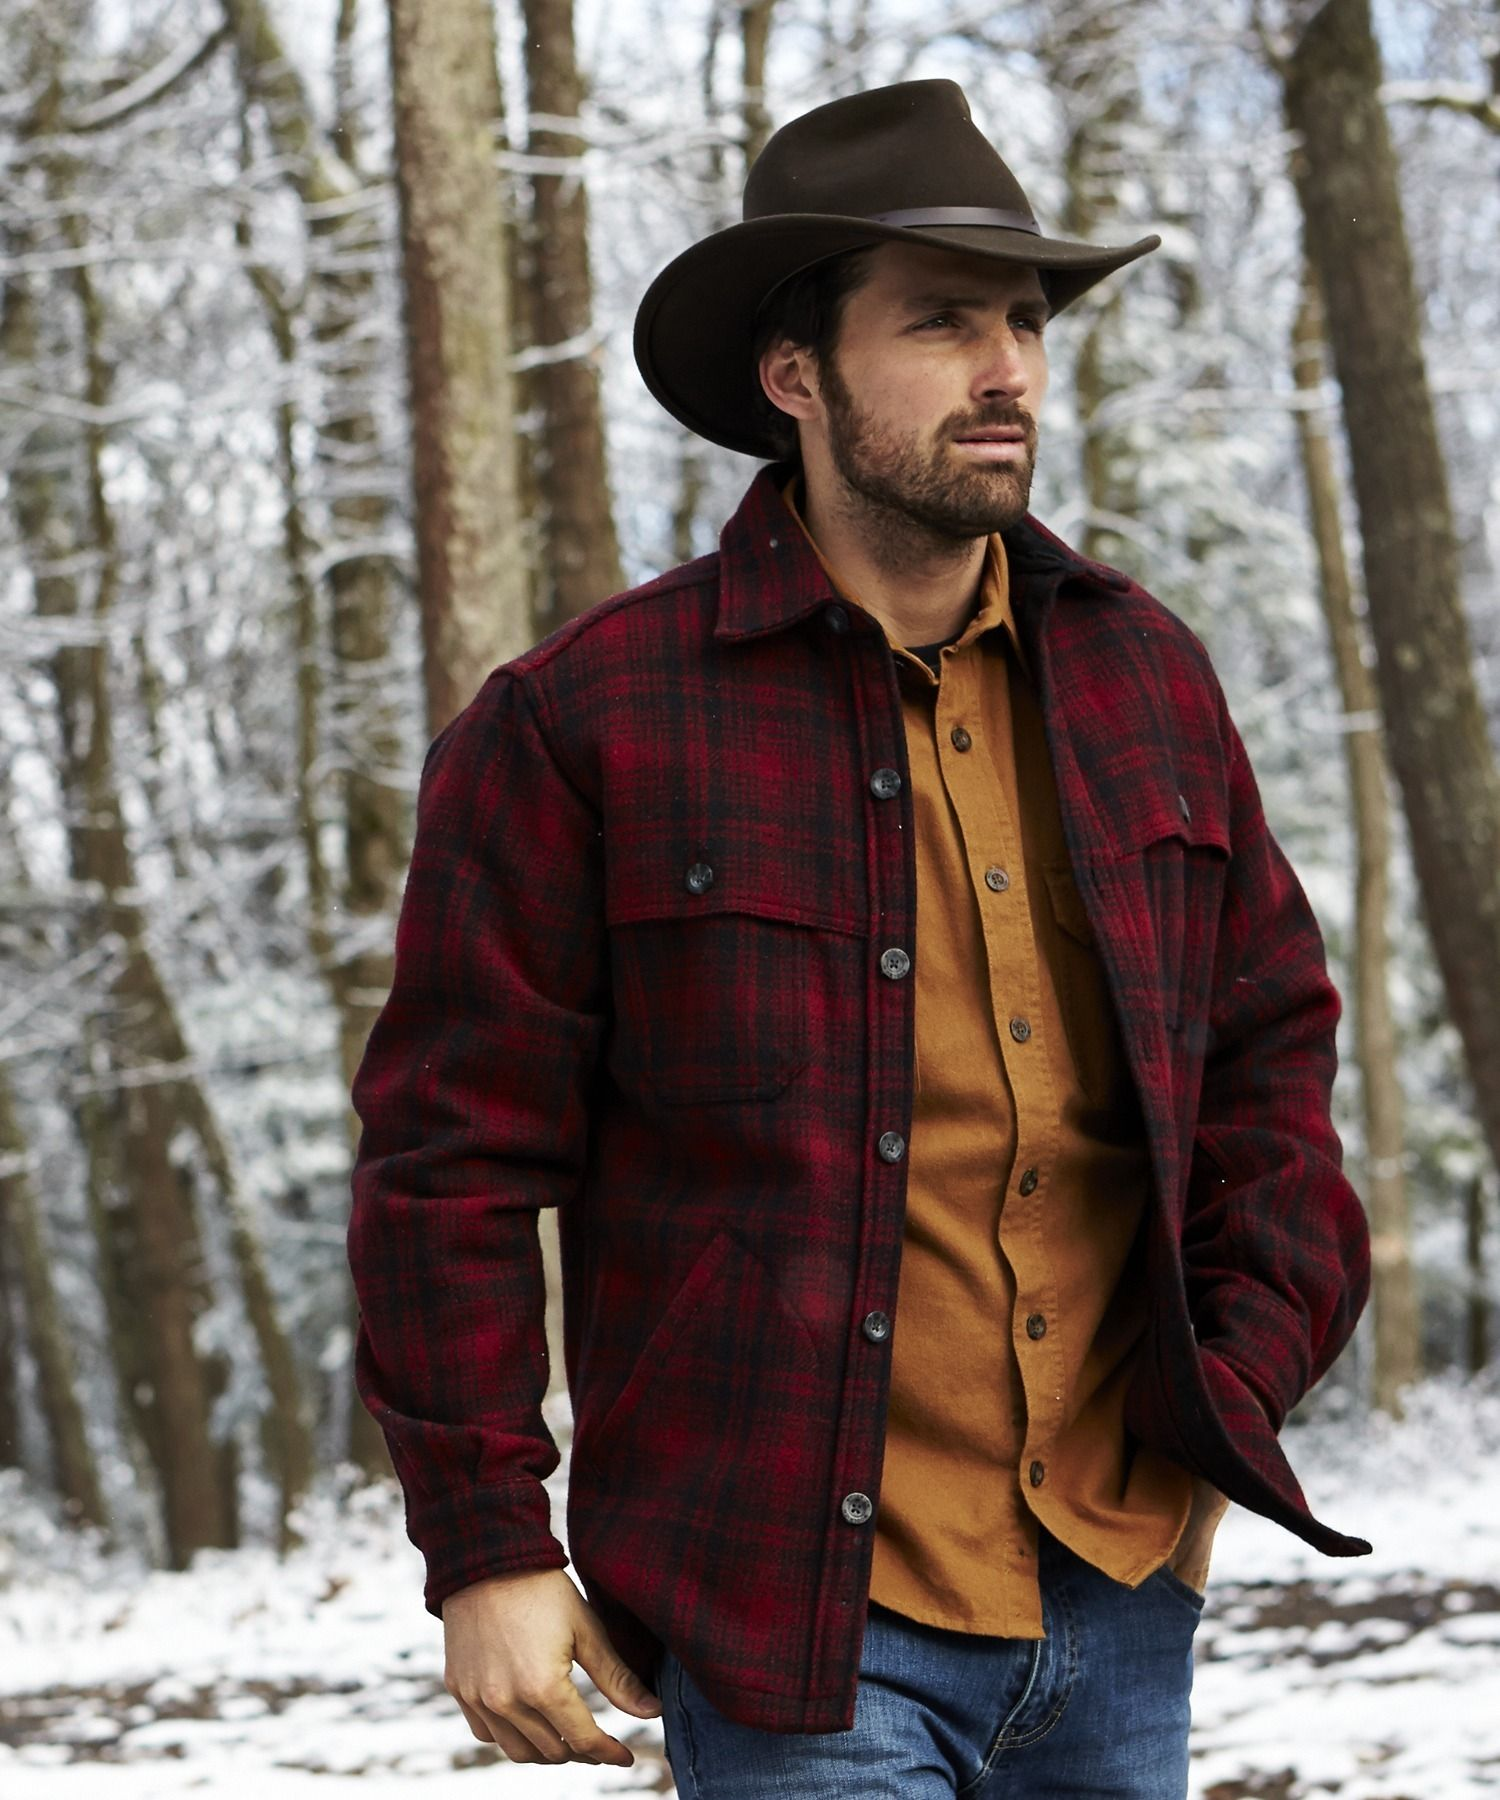 Flannel shirt men outfit  Menus Stag Plaid Wool Shirt by WOOLRICH The Original Outdoor